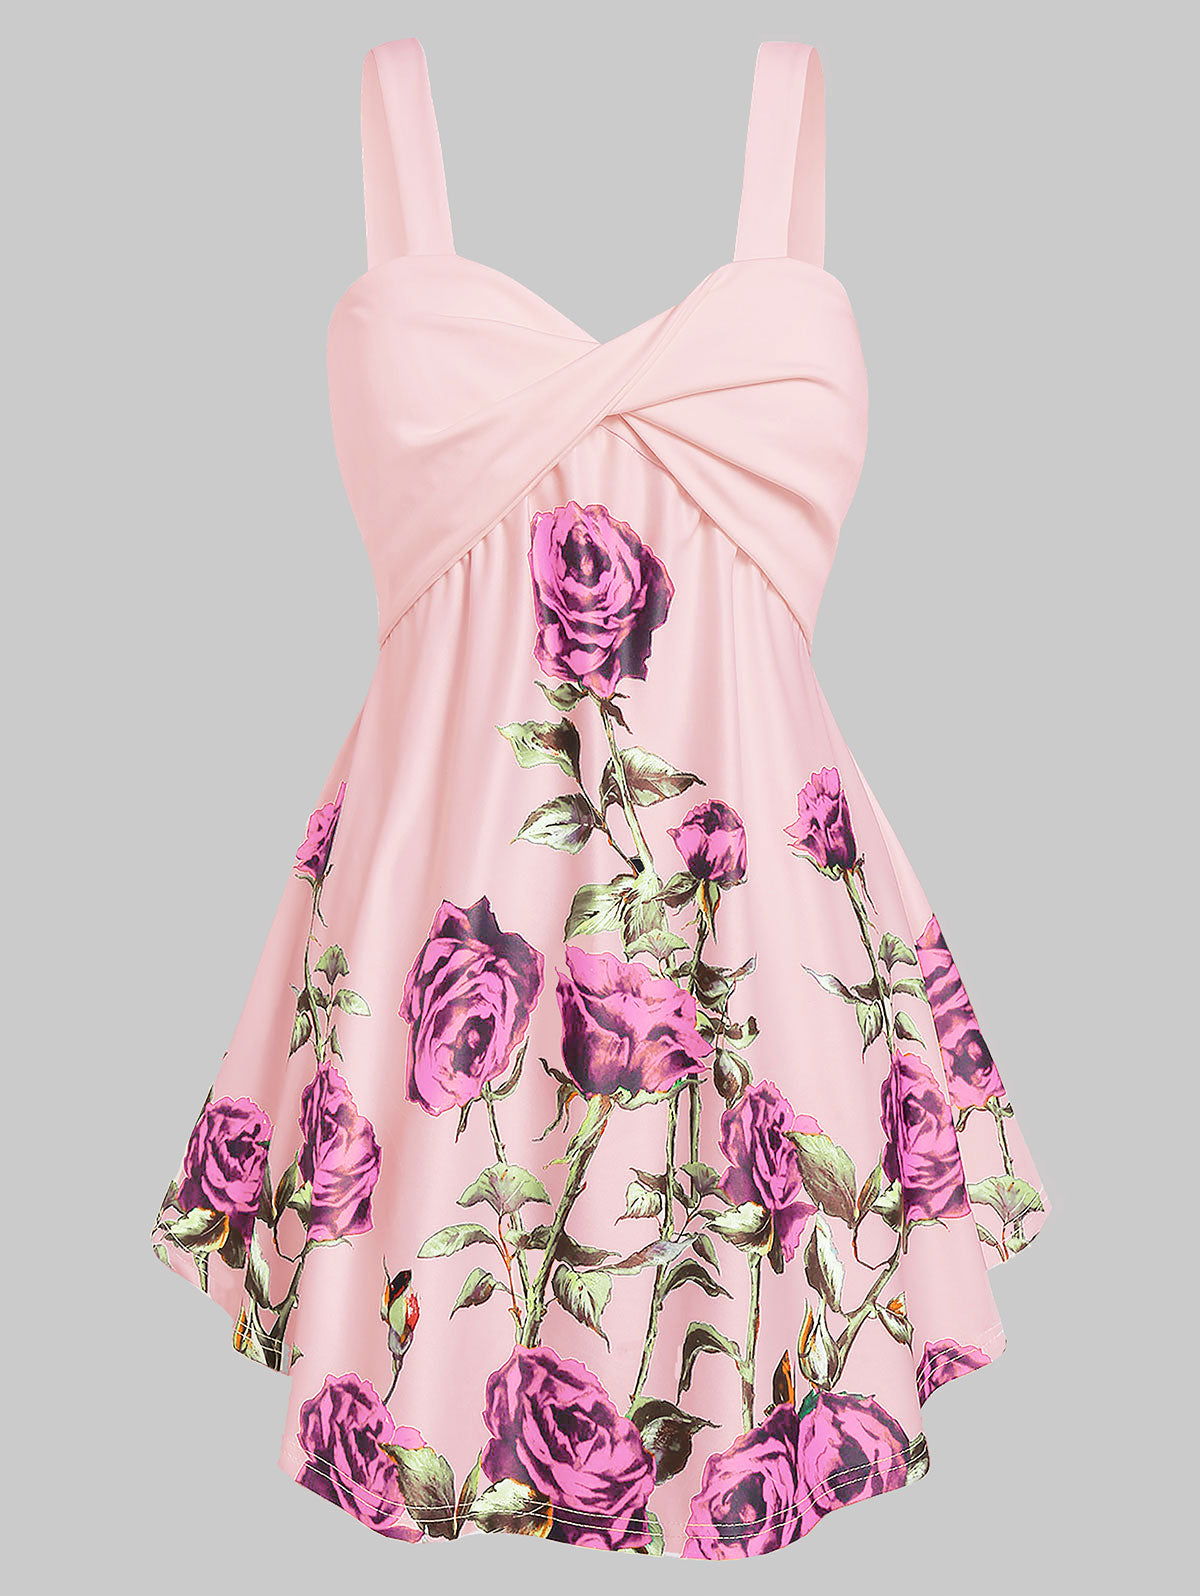 Plus Size Floral Print Flare Sleeveless Vests Sweetheart Neck Sexy Tops